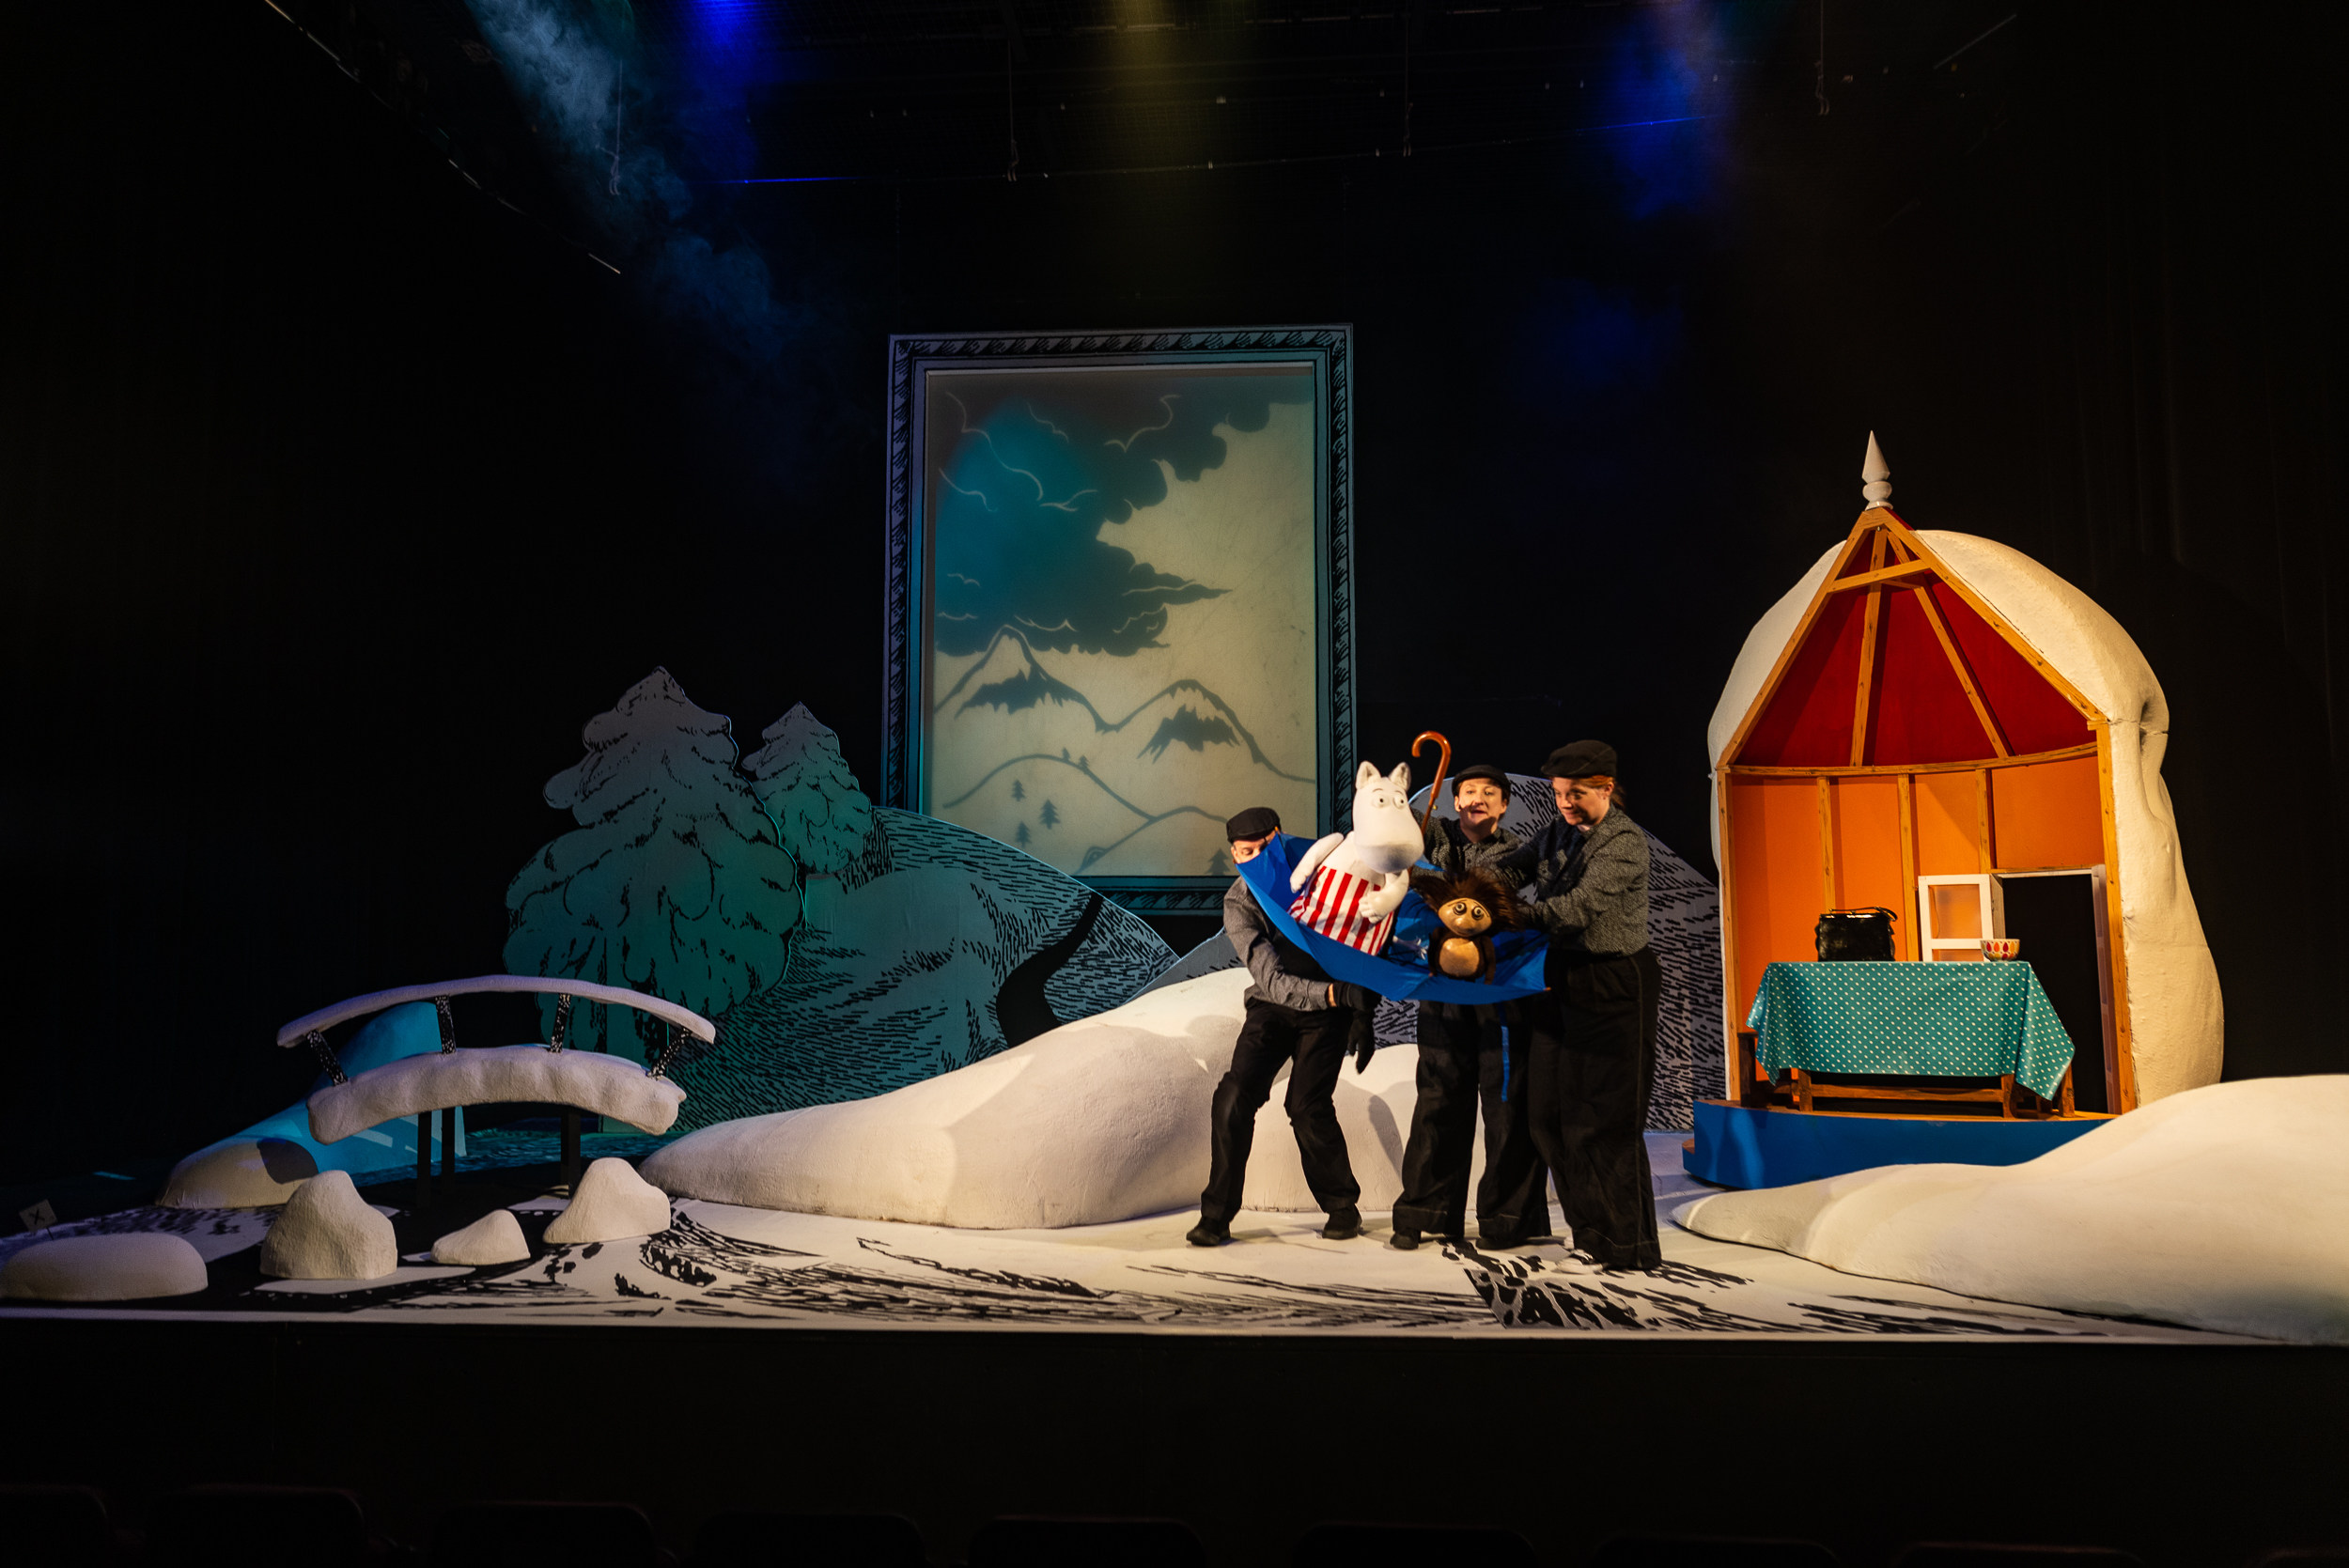 Moomins The Fir Tree at Norden Farm Review - show pictures 4